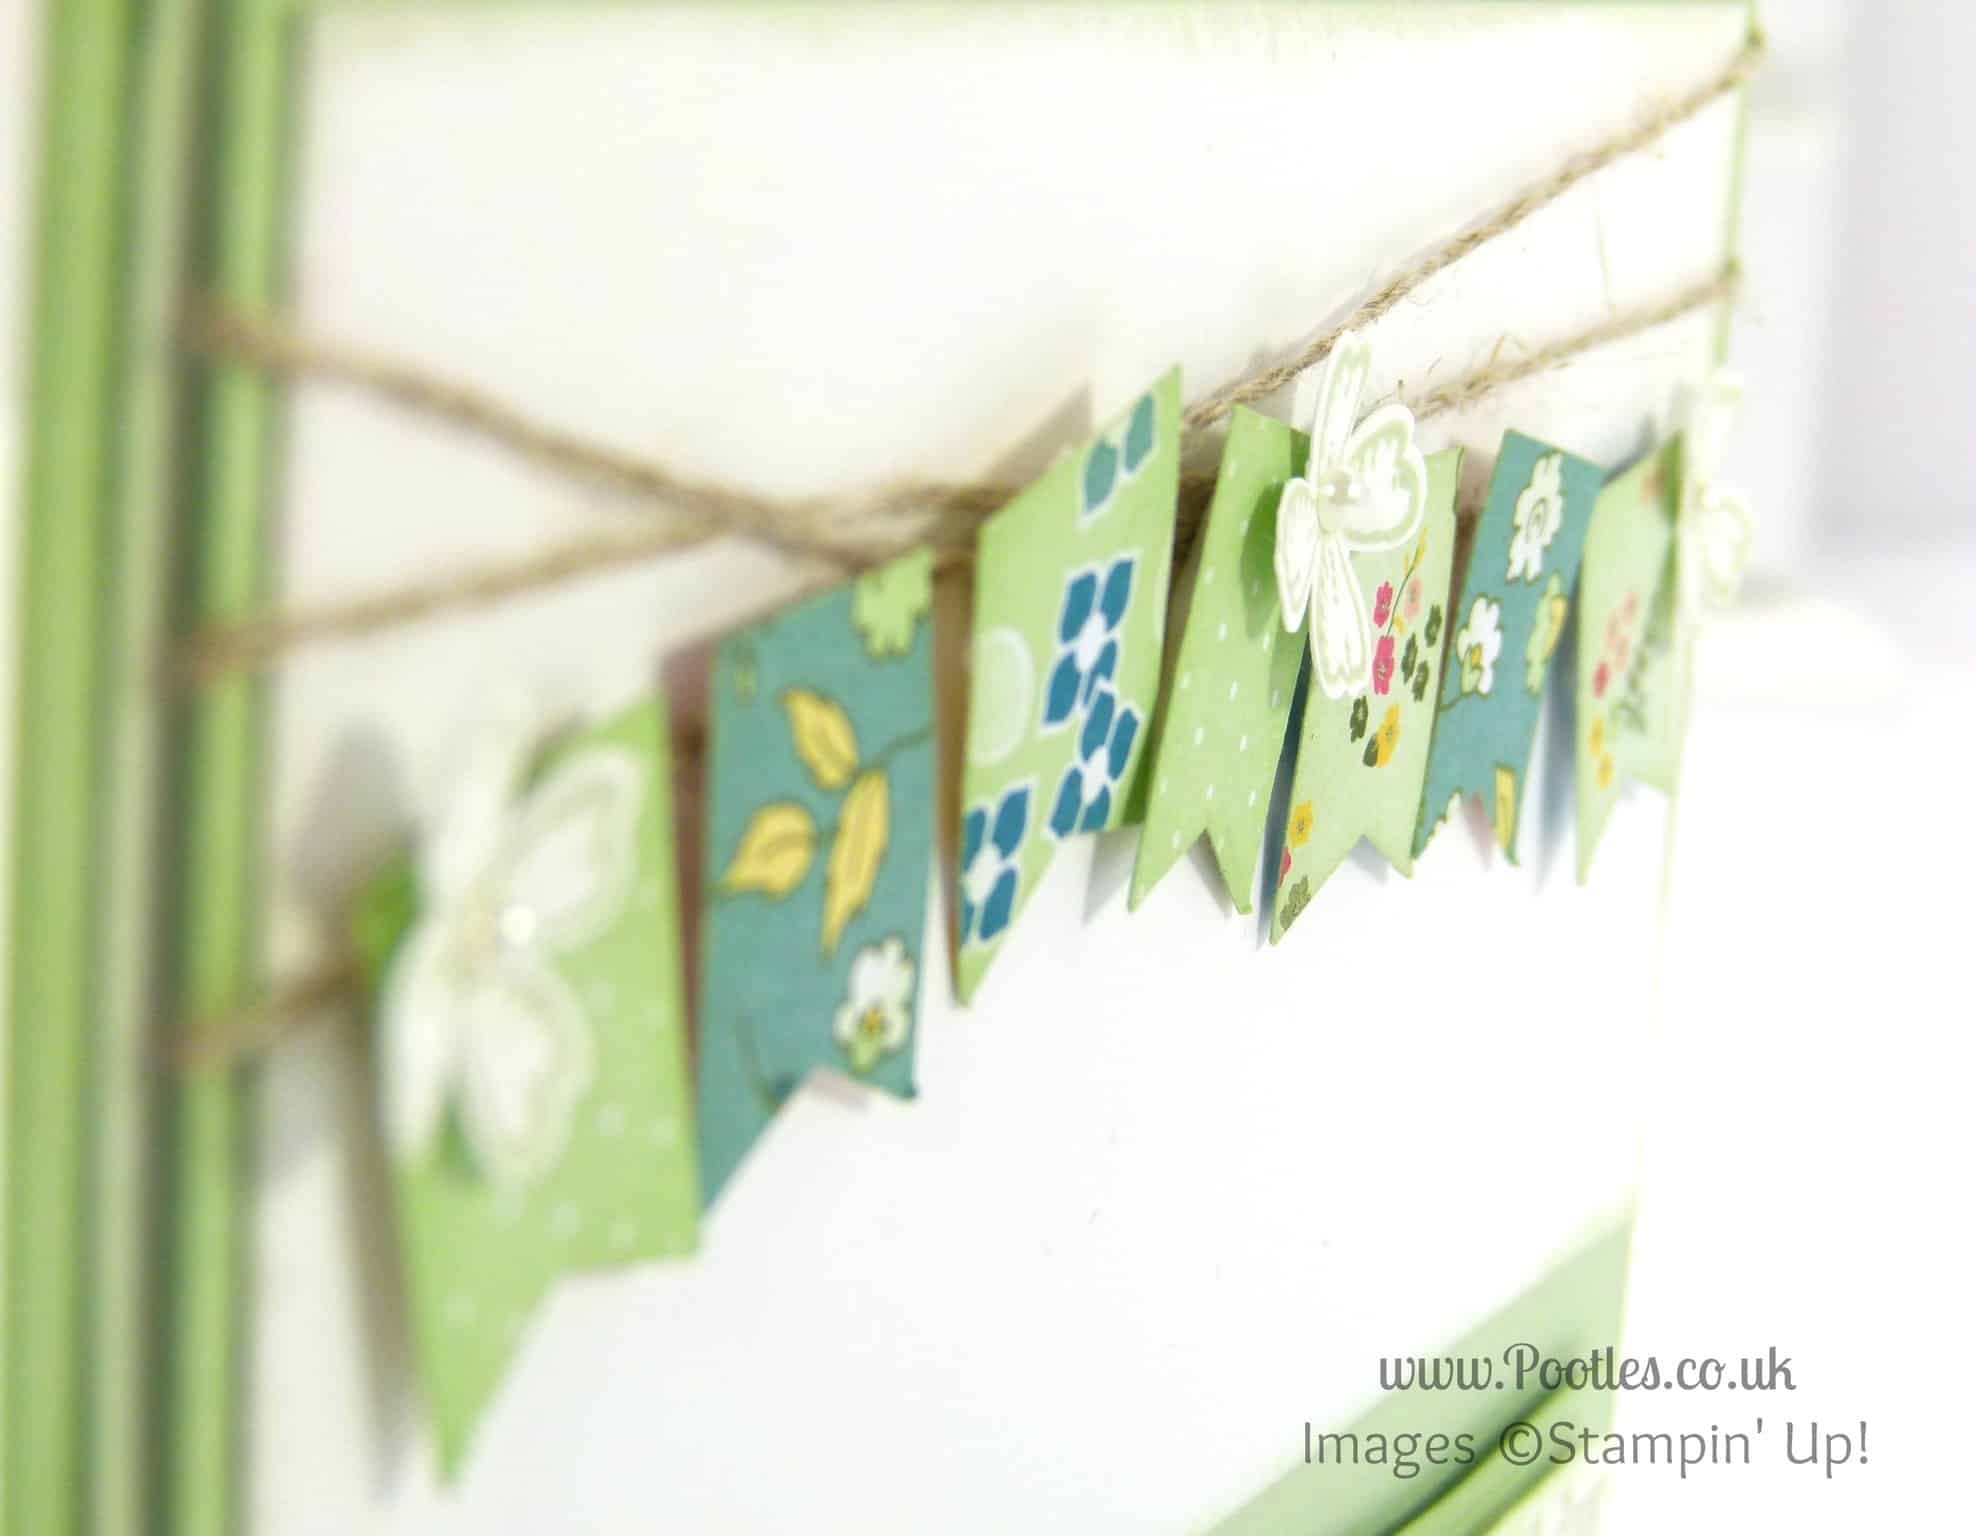 Stampin' Up! UK Demonstrator Pootles - Happy Birthday Mum! Bunting Detail